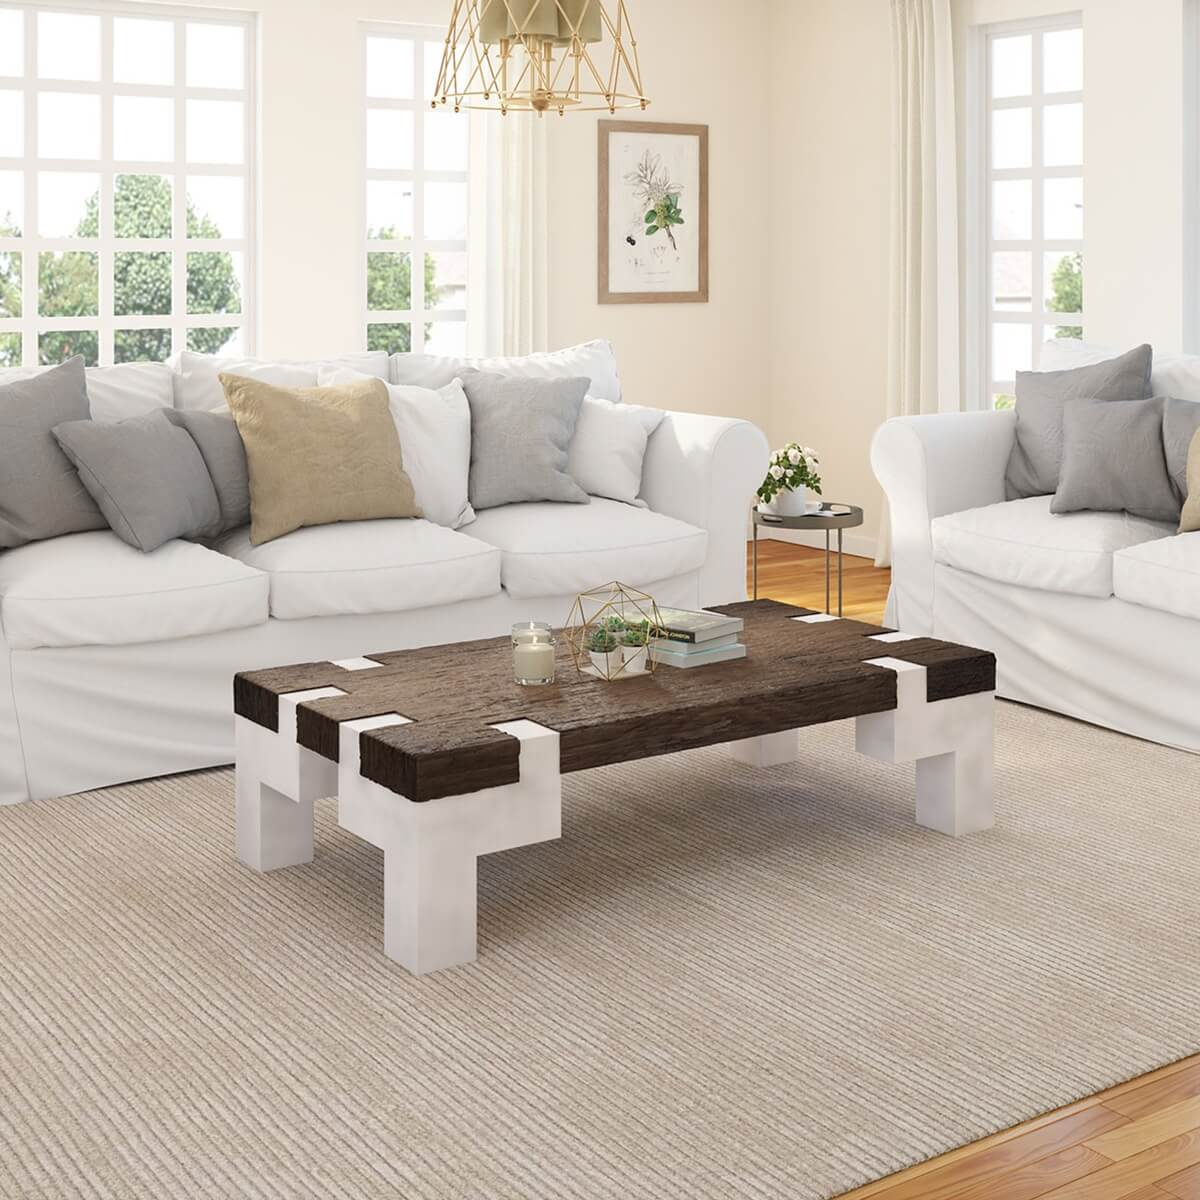 mexicali two tone rustic wood large farmhouse coffee table with iron legs